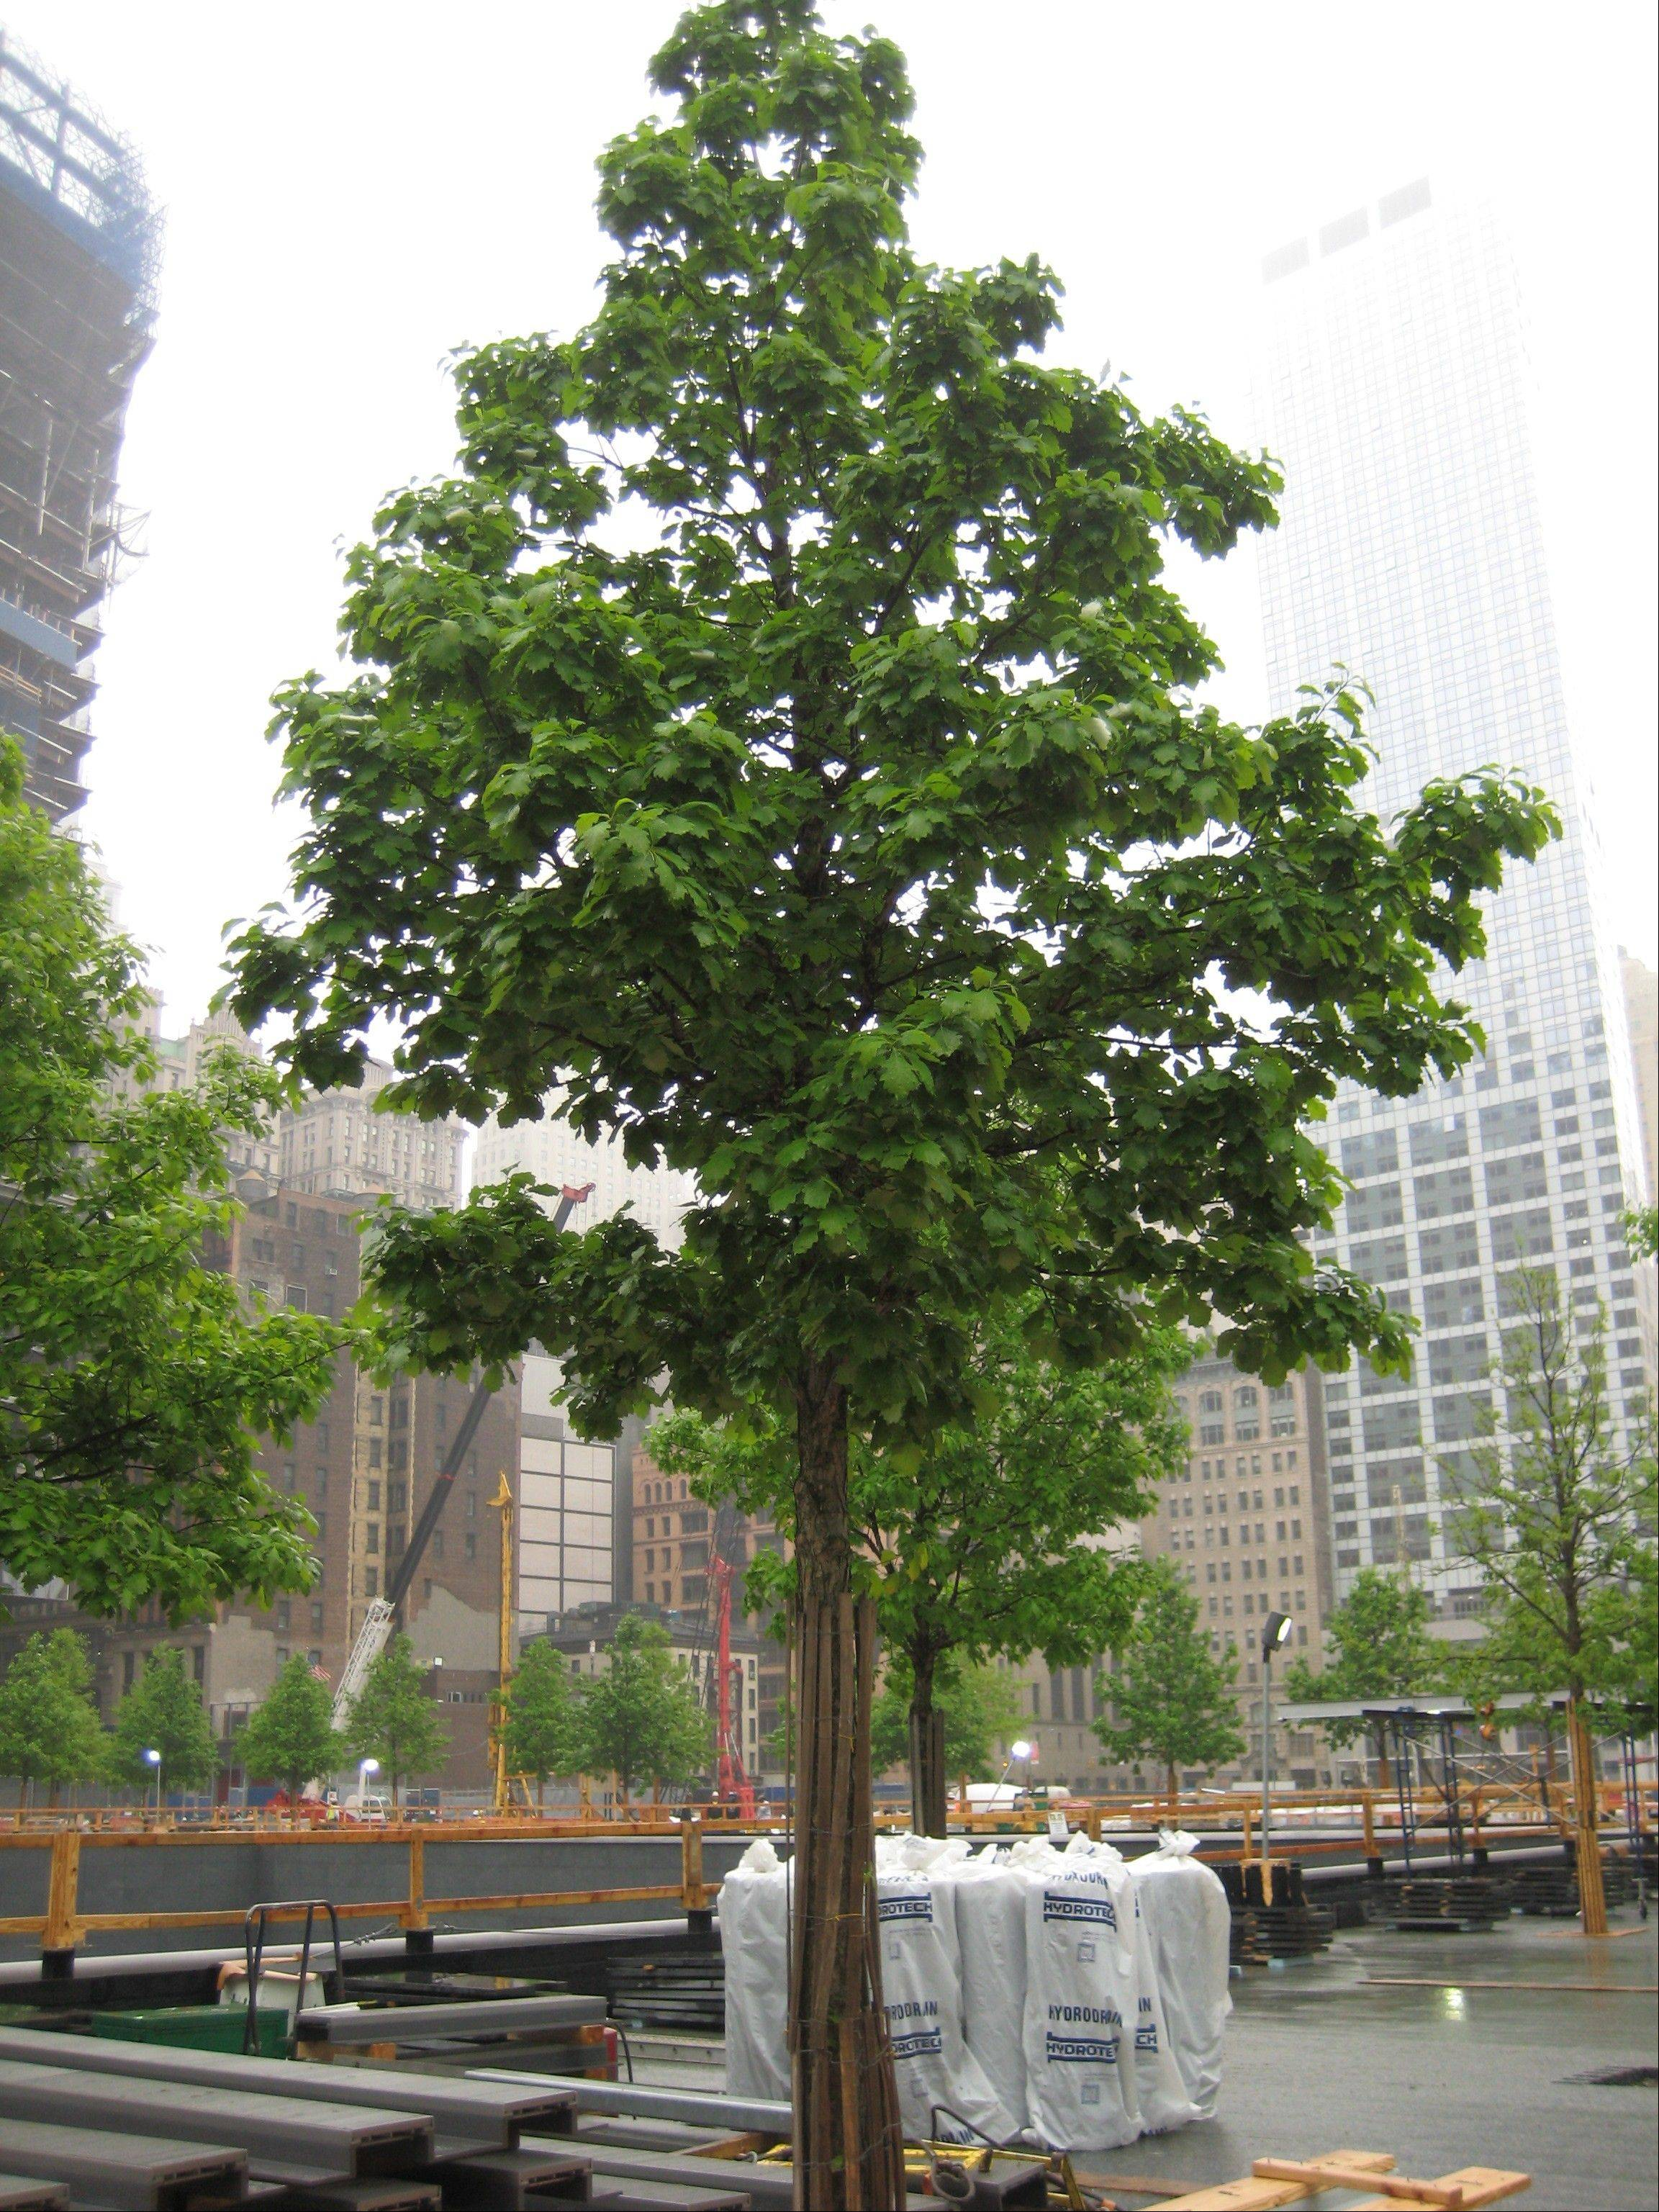 The trees at Ground Zero in Manhattan grew five years before being planted.